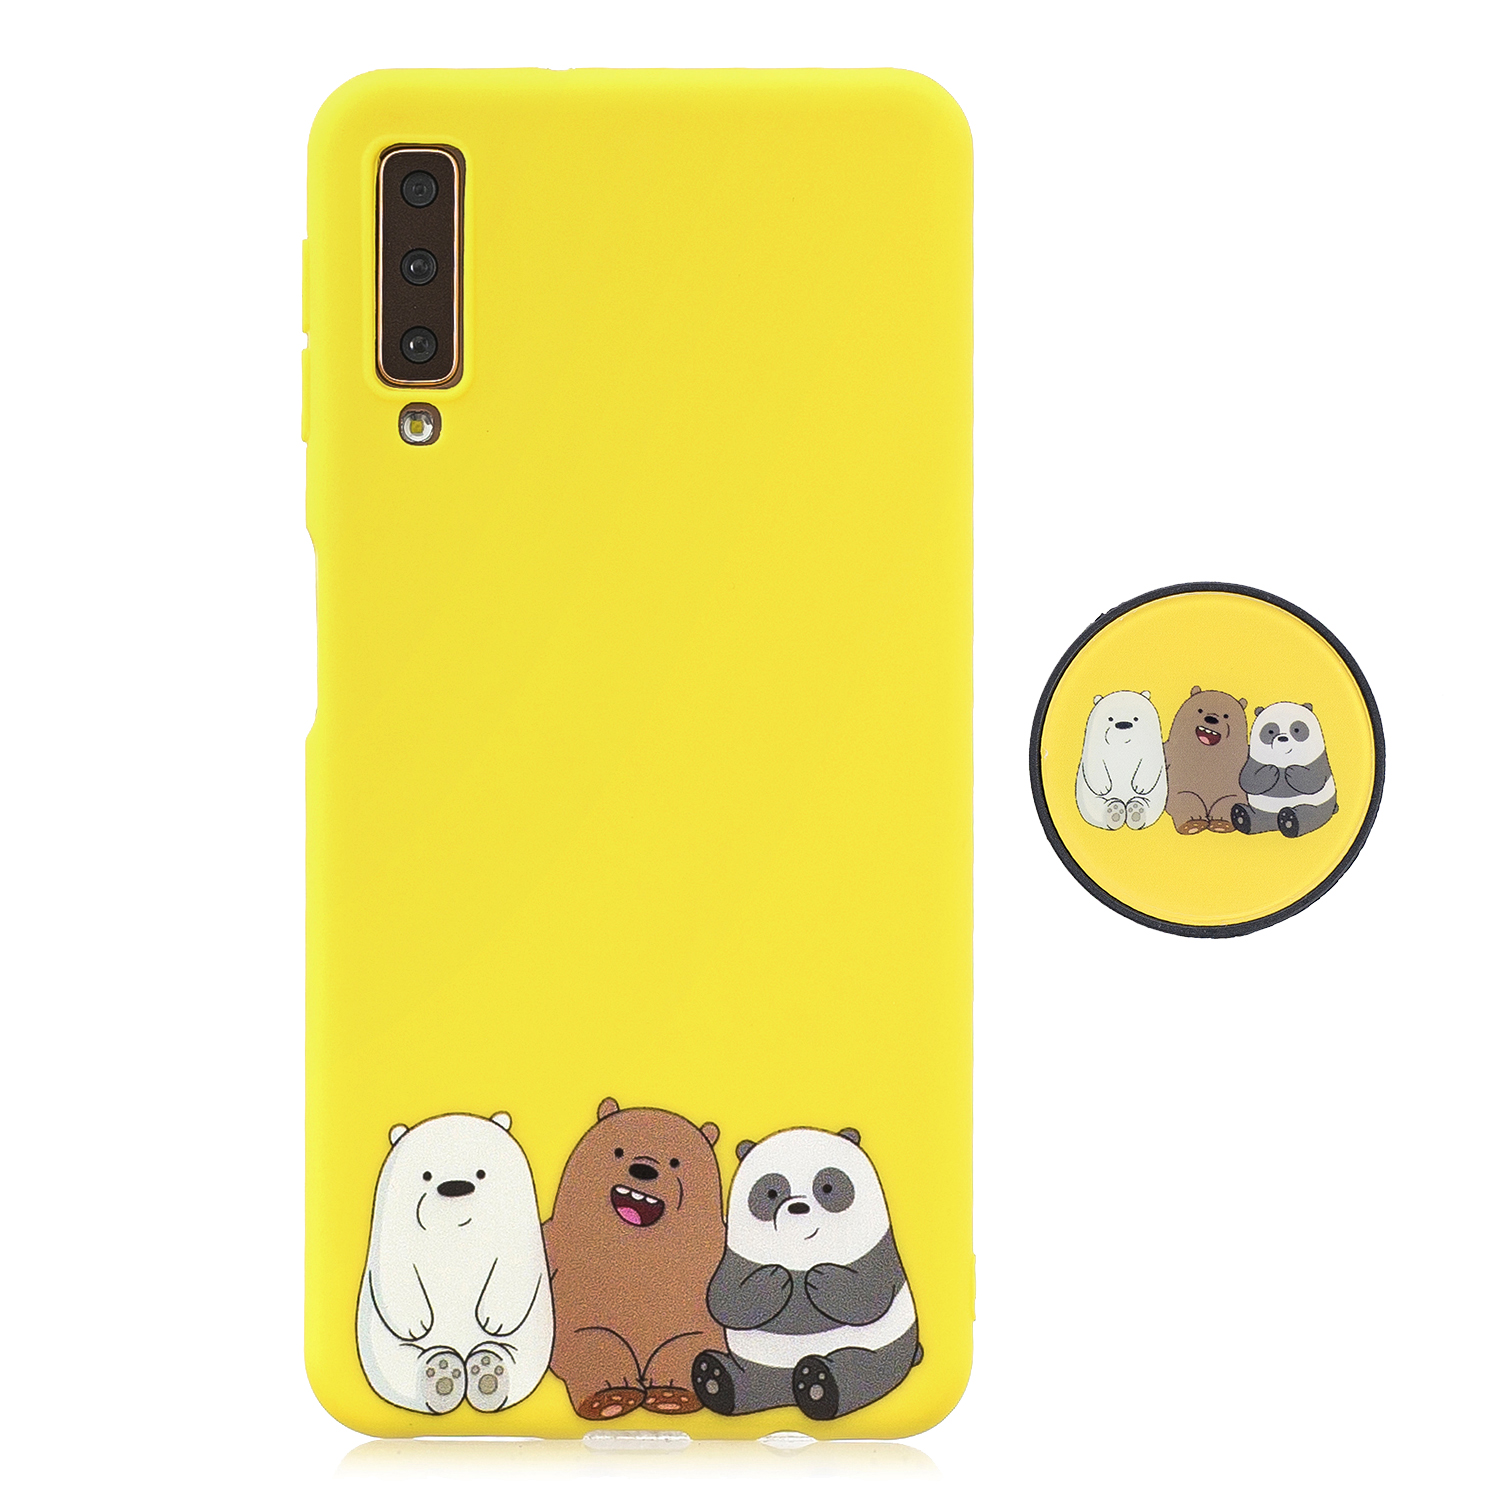 For Samsung A7 2018 A750 Full Cover Protective Phone Case Cartoon Pattern Solid Color TPU Phone Case with Adjustable Bracket 7